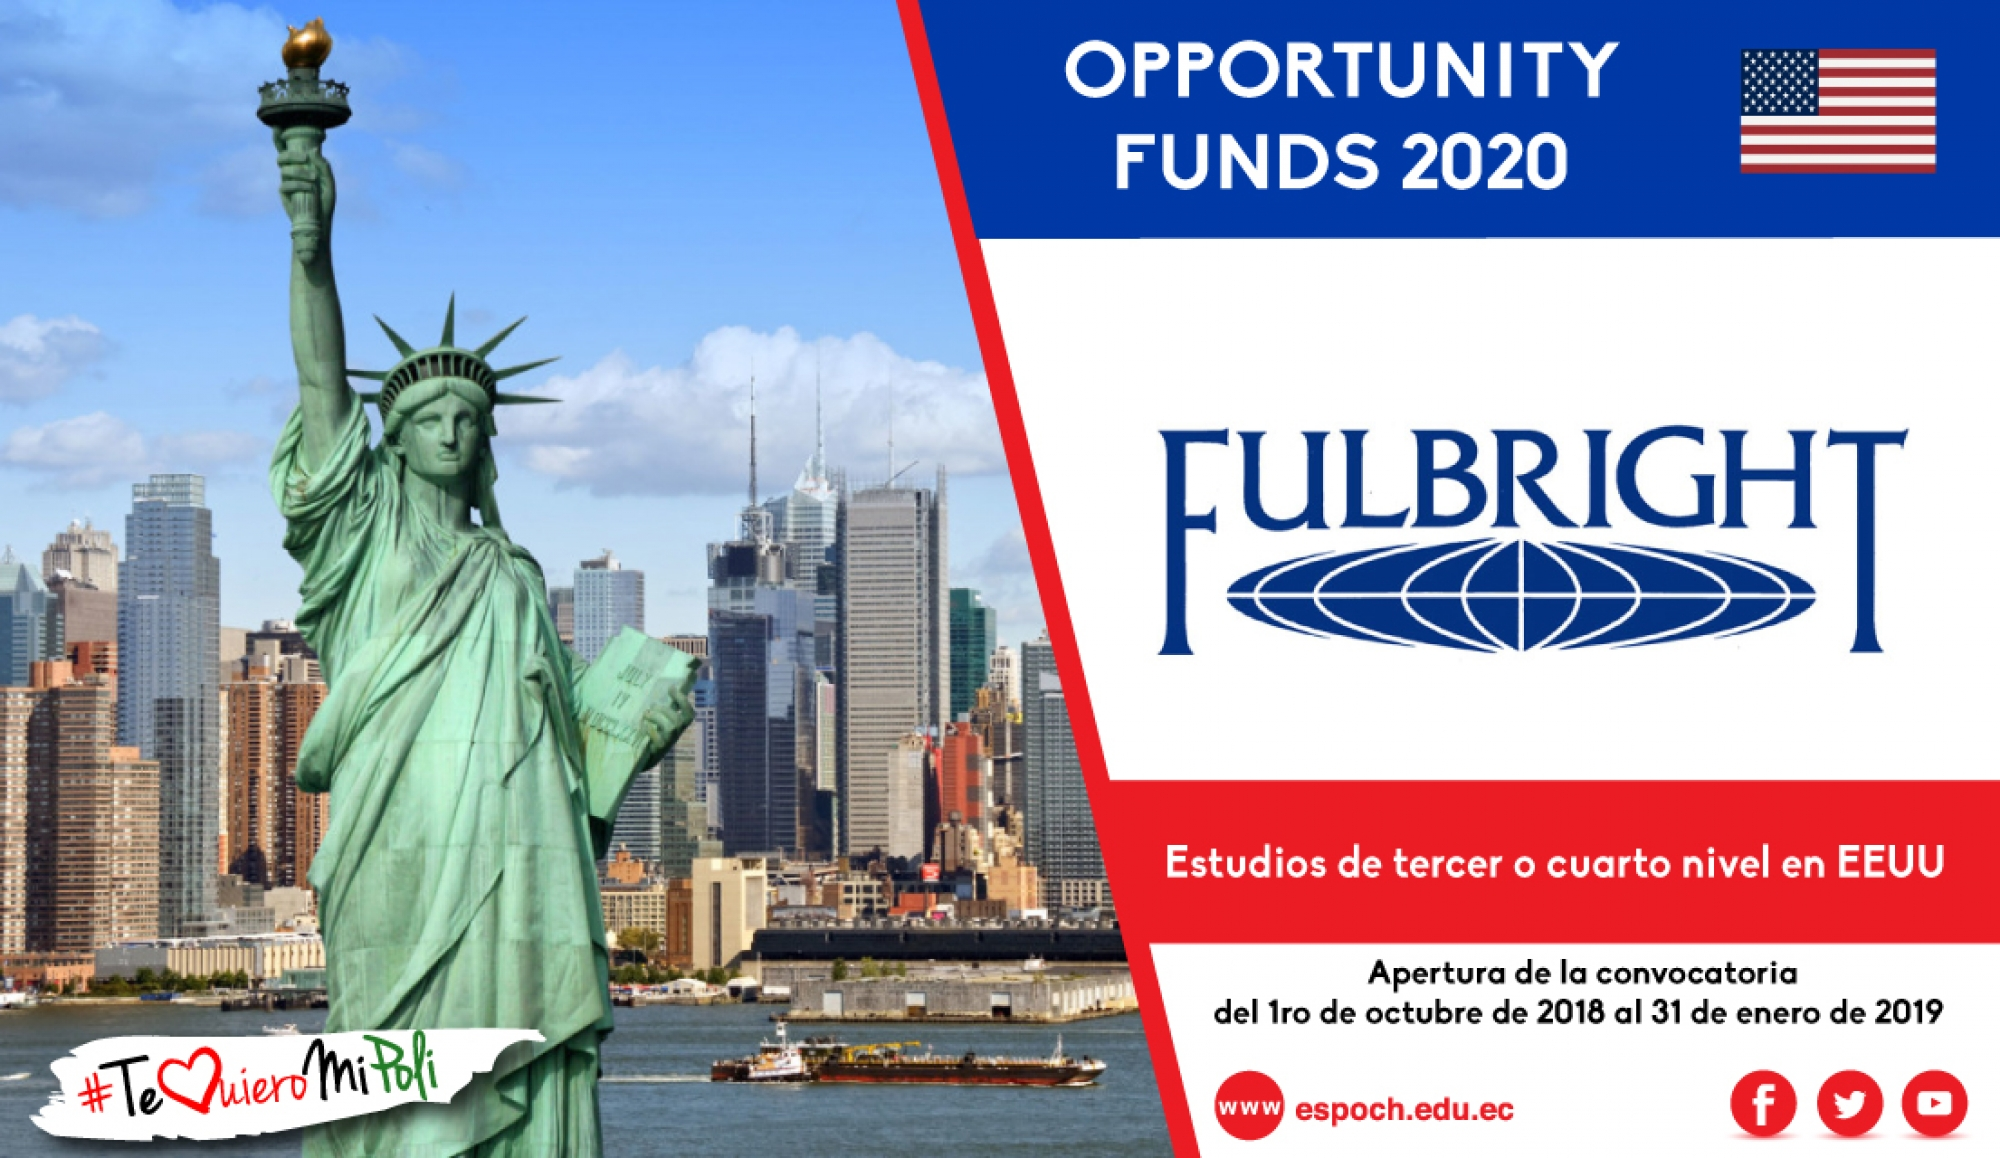 OPPORTUNITY FUNDS 2020 USA